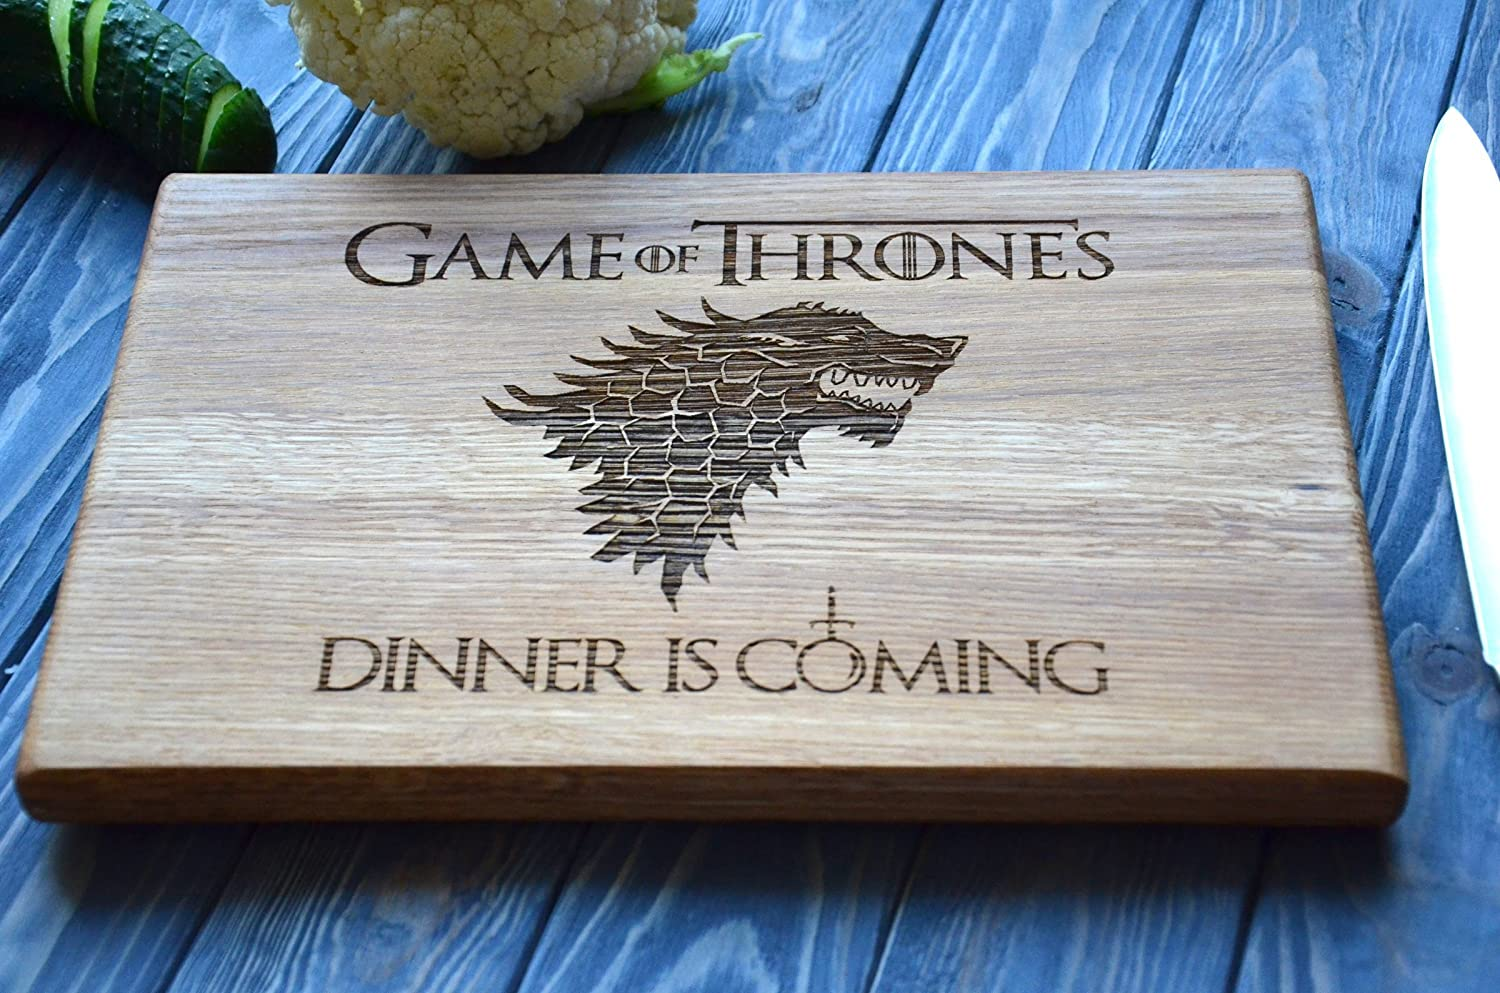 Jon Snow Dinner Is Coming Cutting Board (7.8*11.8'') Or (9.8*13.8) Game of Thrones Stark Family Wooden Custom Engraved Chopping Board Personalized Housewarming Gift For Couple Wedding Present Idea By Enjoy The Wood